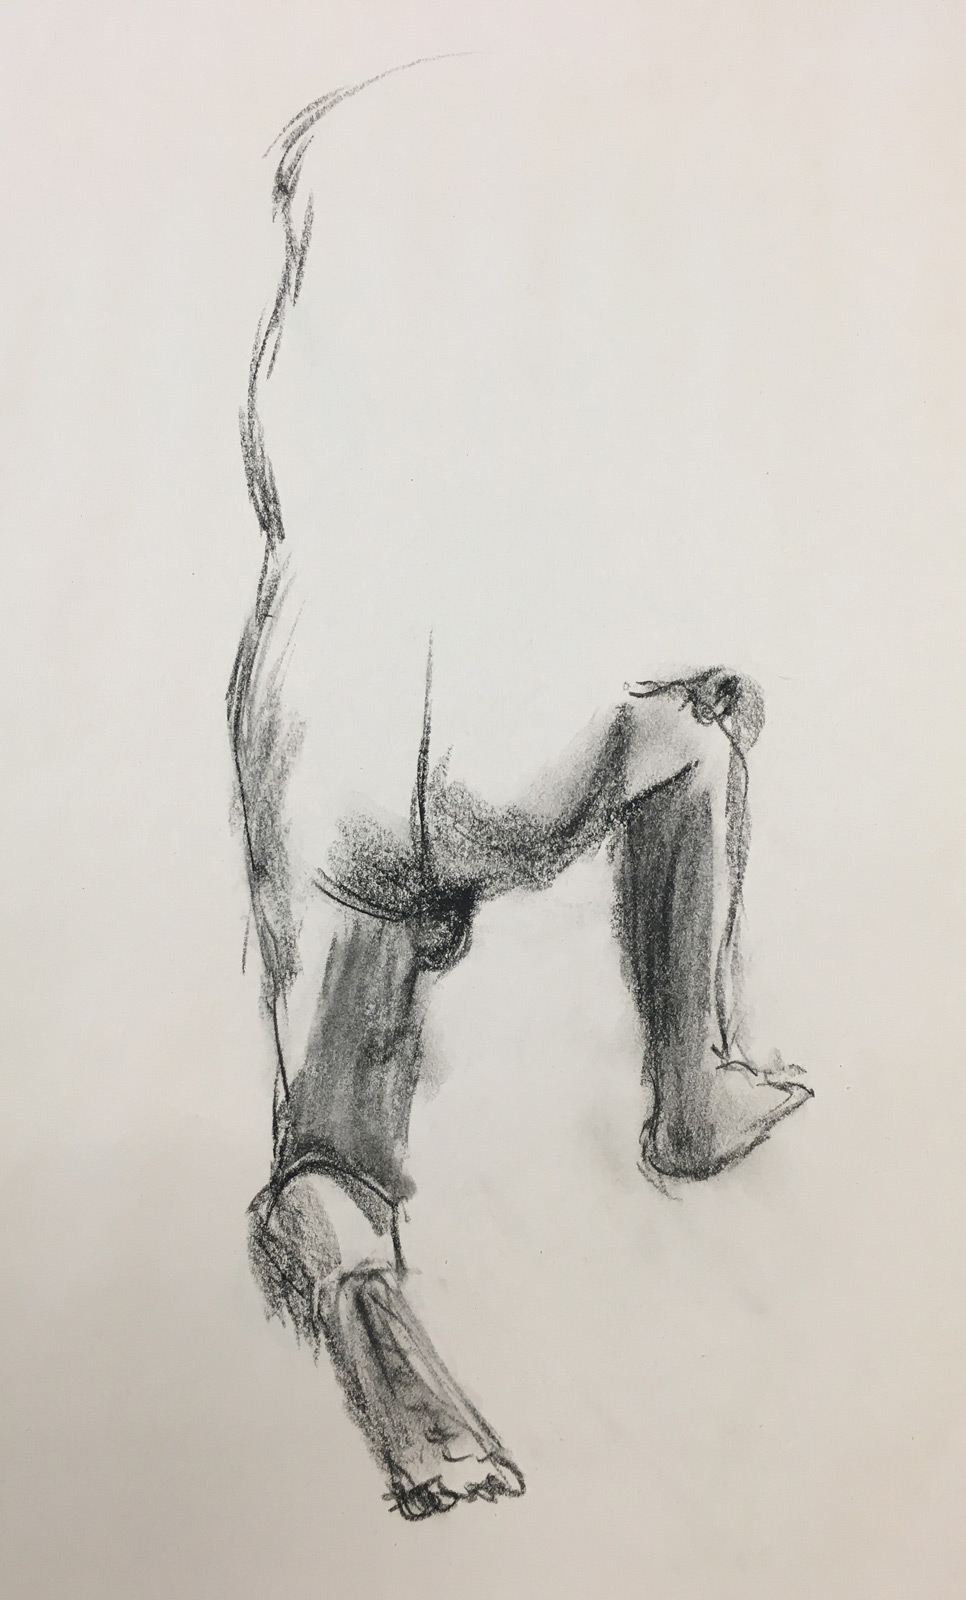 Gesture drawing of a make figure in charcoal on paper by an SVC art student